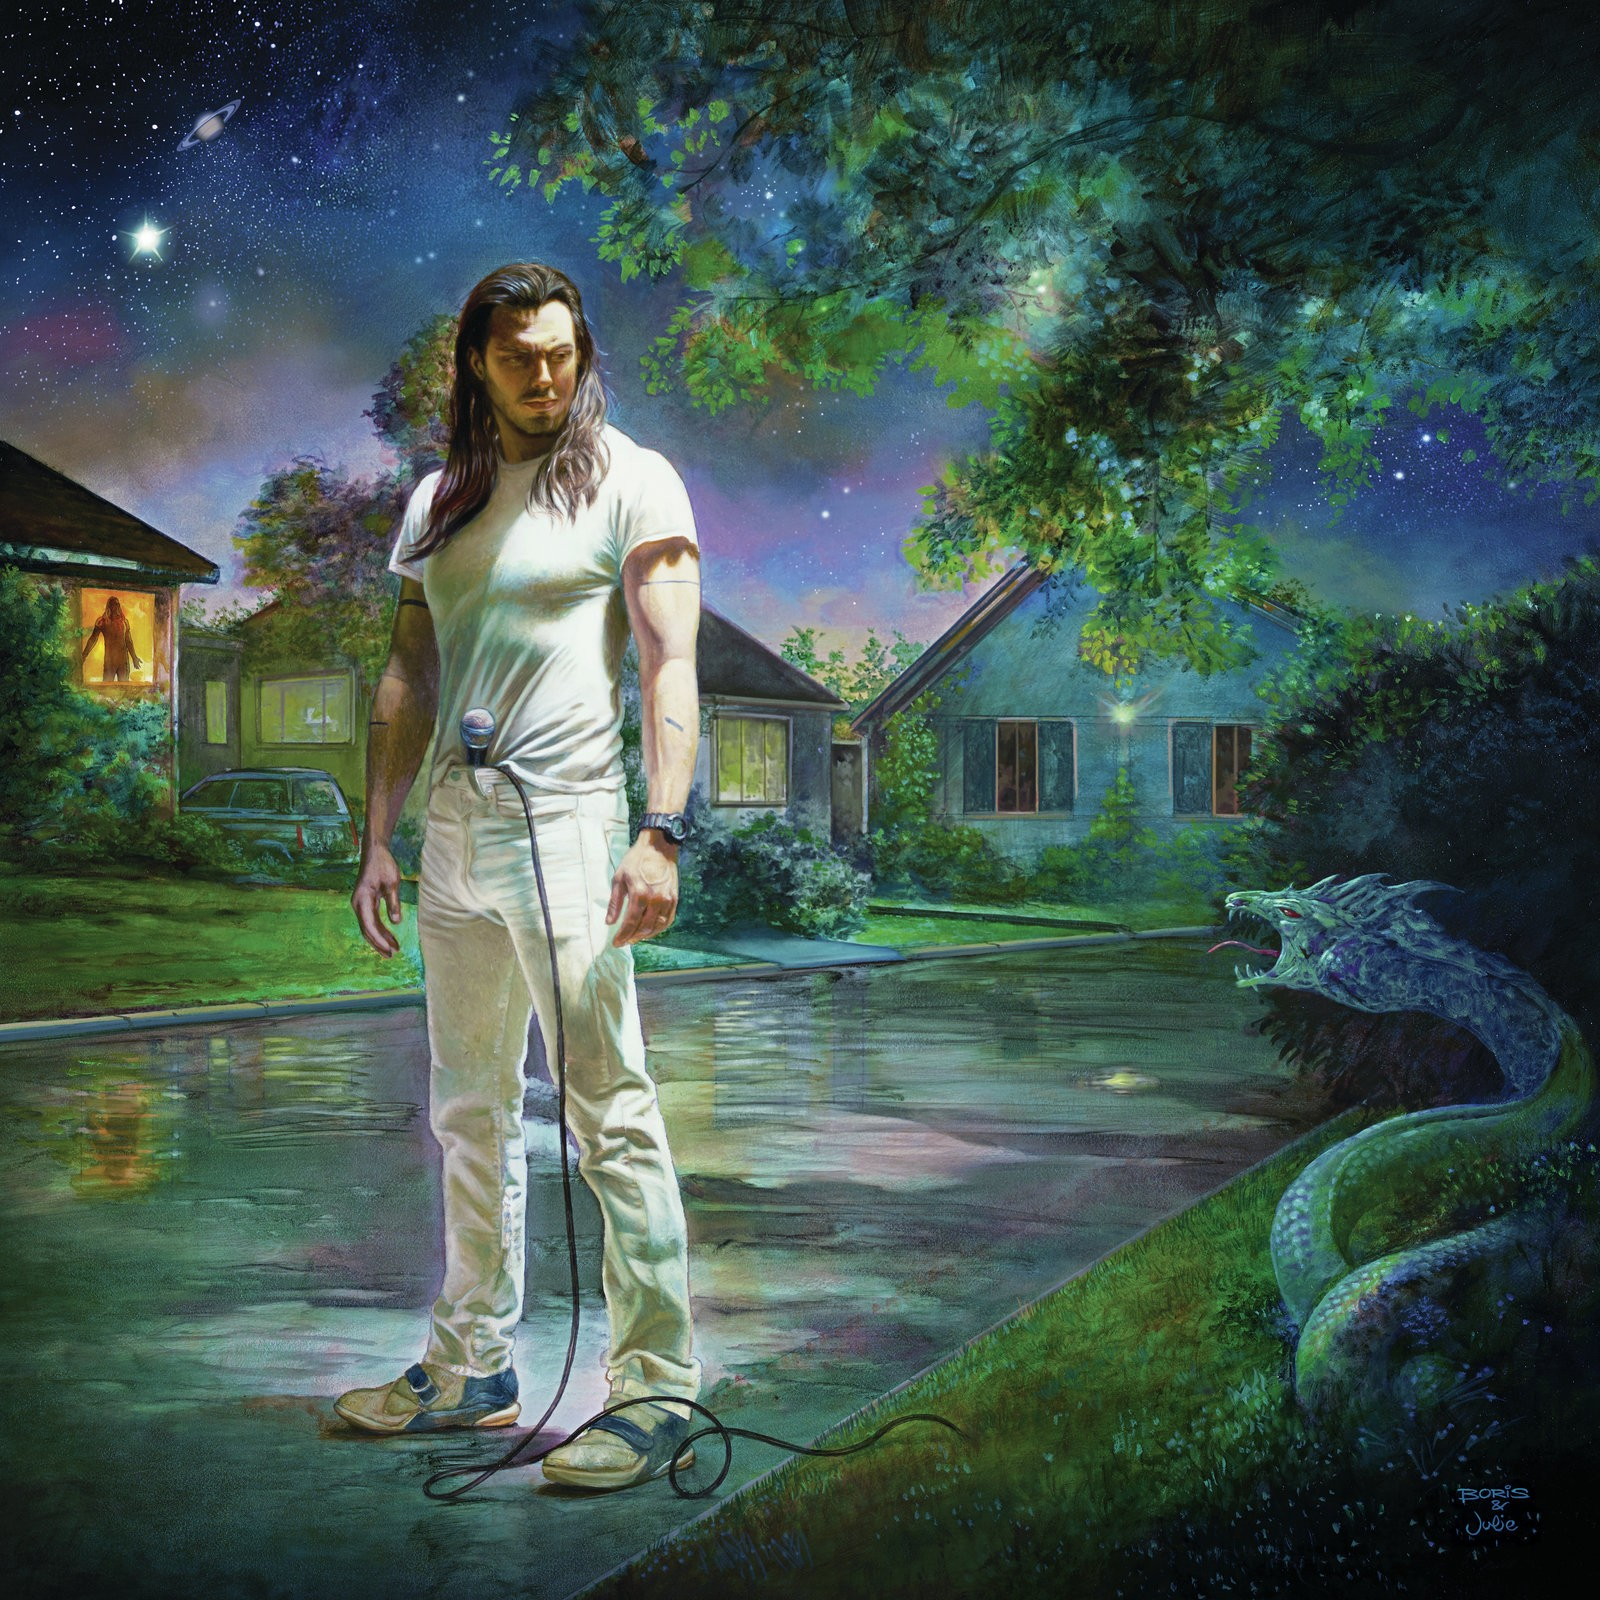 andrewwk-credit-borisvallejo-juliebell_sq-93961b8afe5e7aeee1.jpg